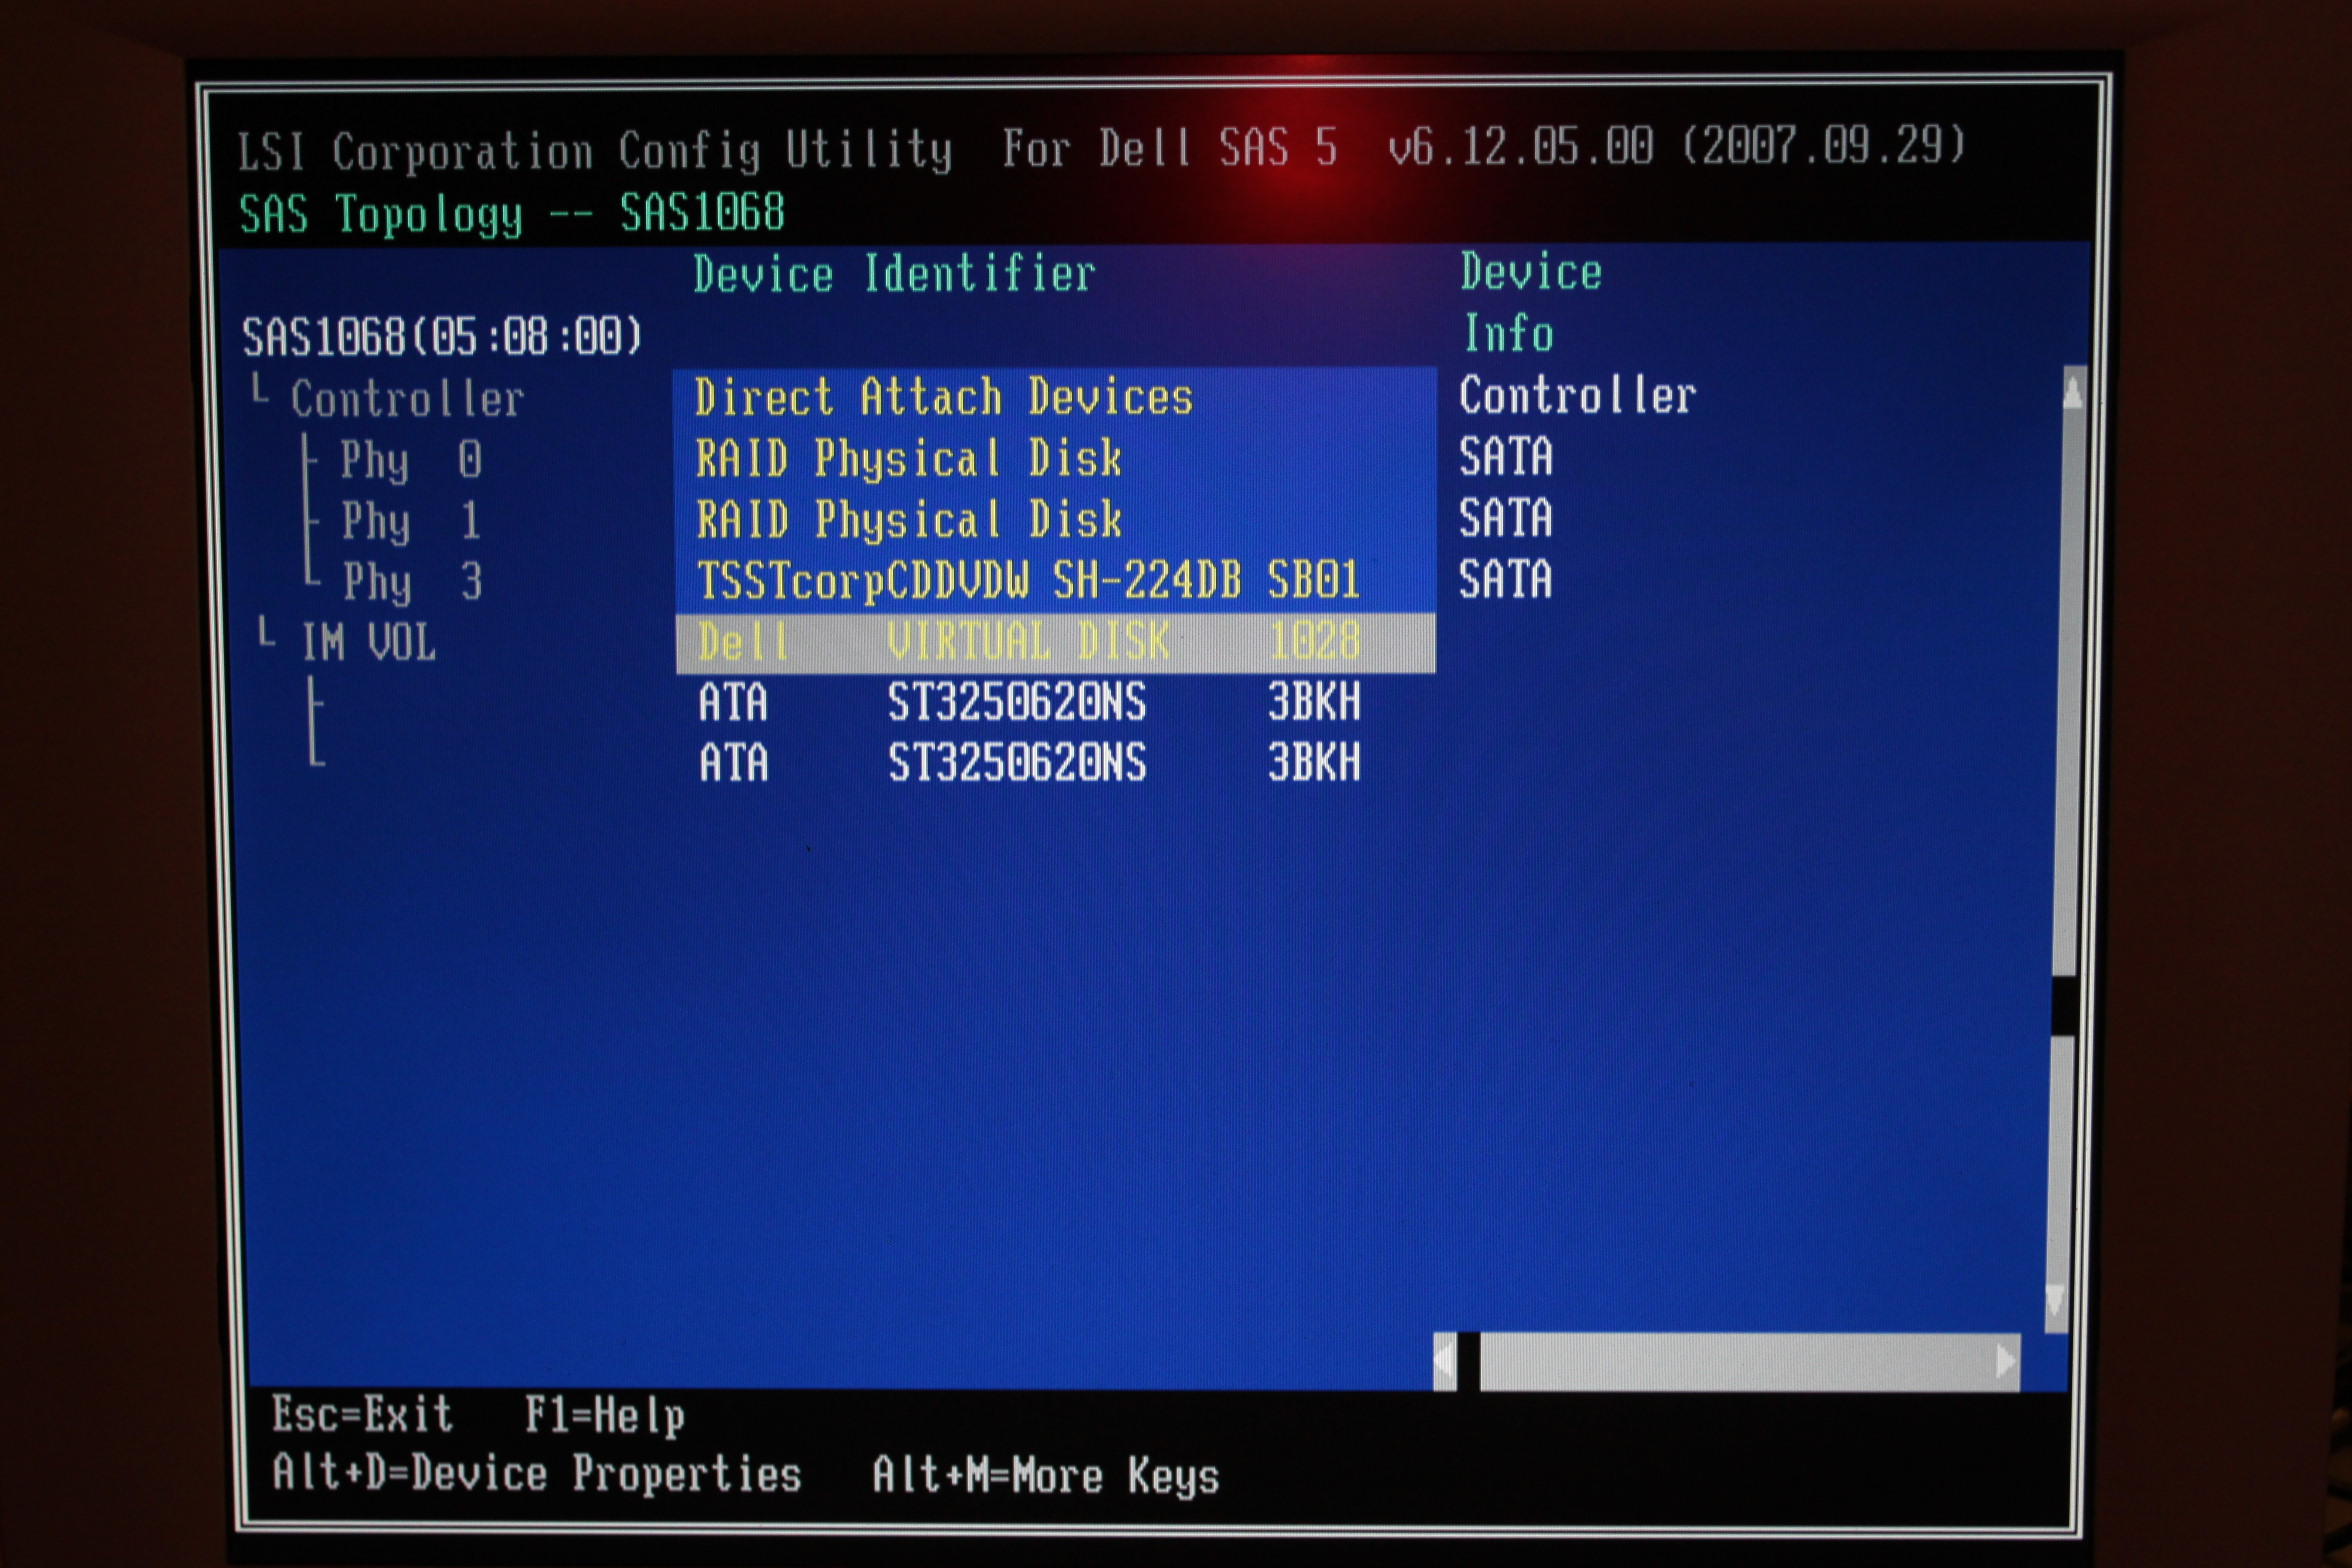 Dell Poweredge SC1430: Win cannot be installed to this disk